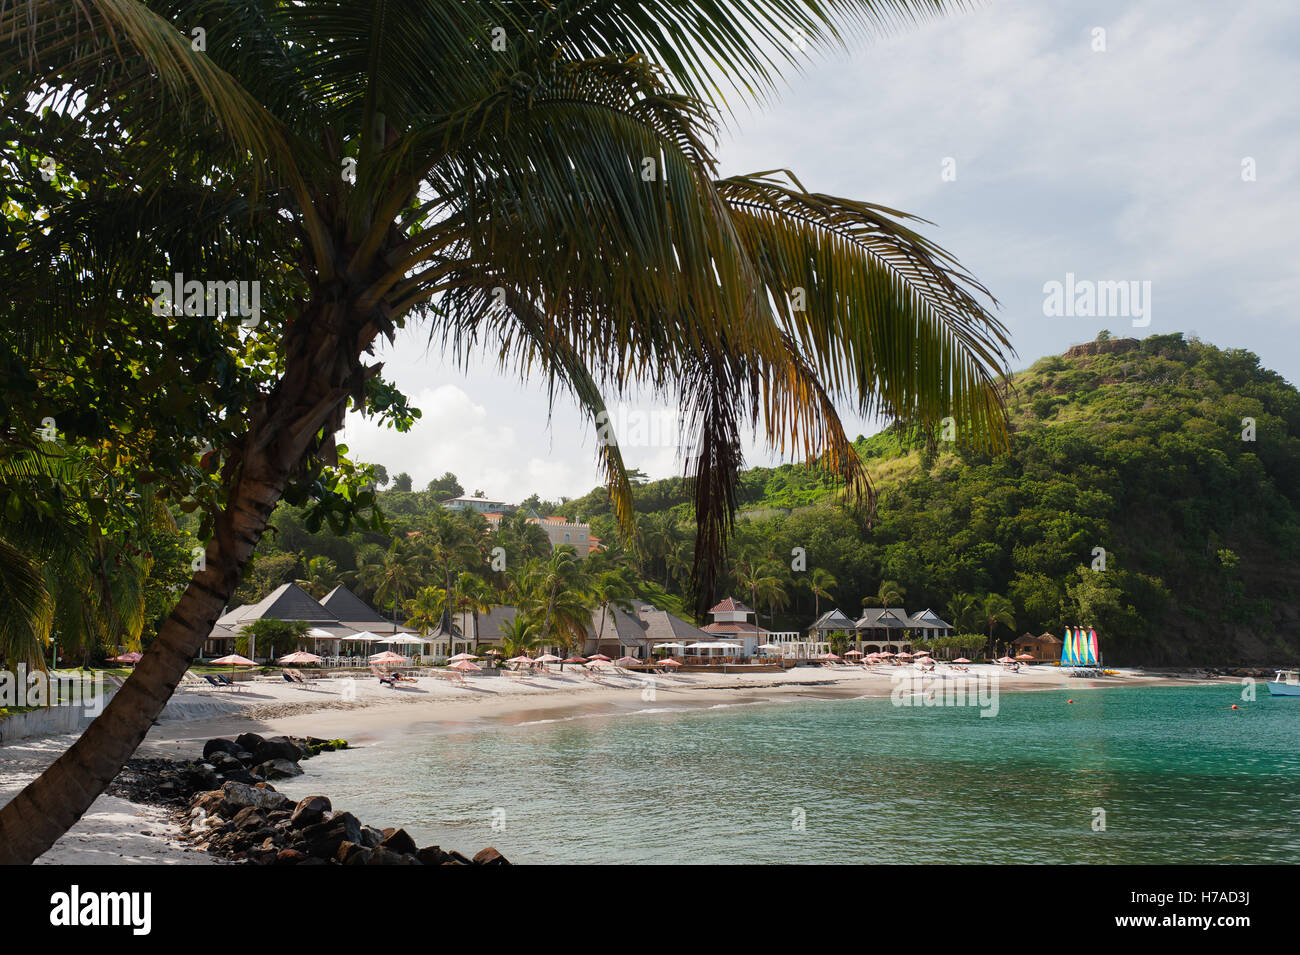 Secluded beach resort on Caribbean island of St Lucia - Stock Image